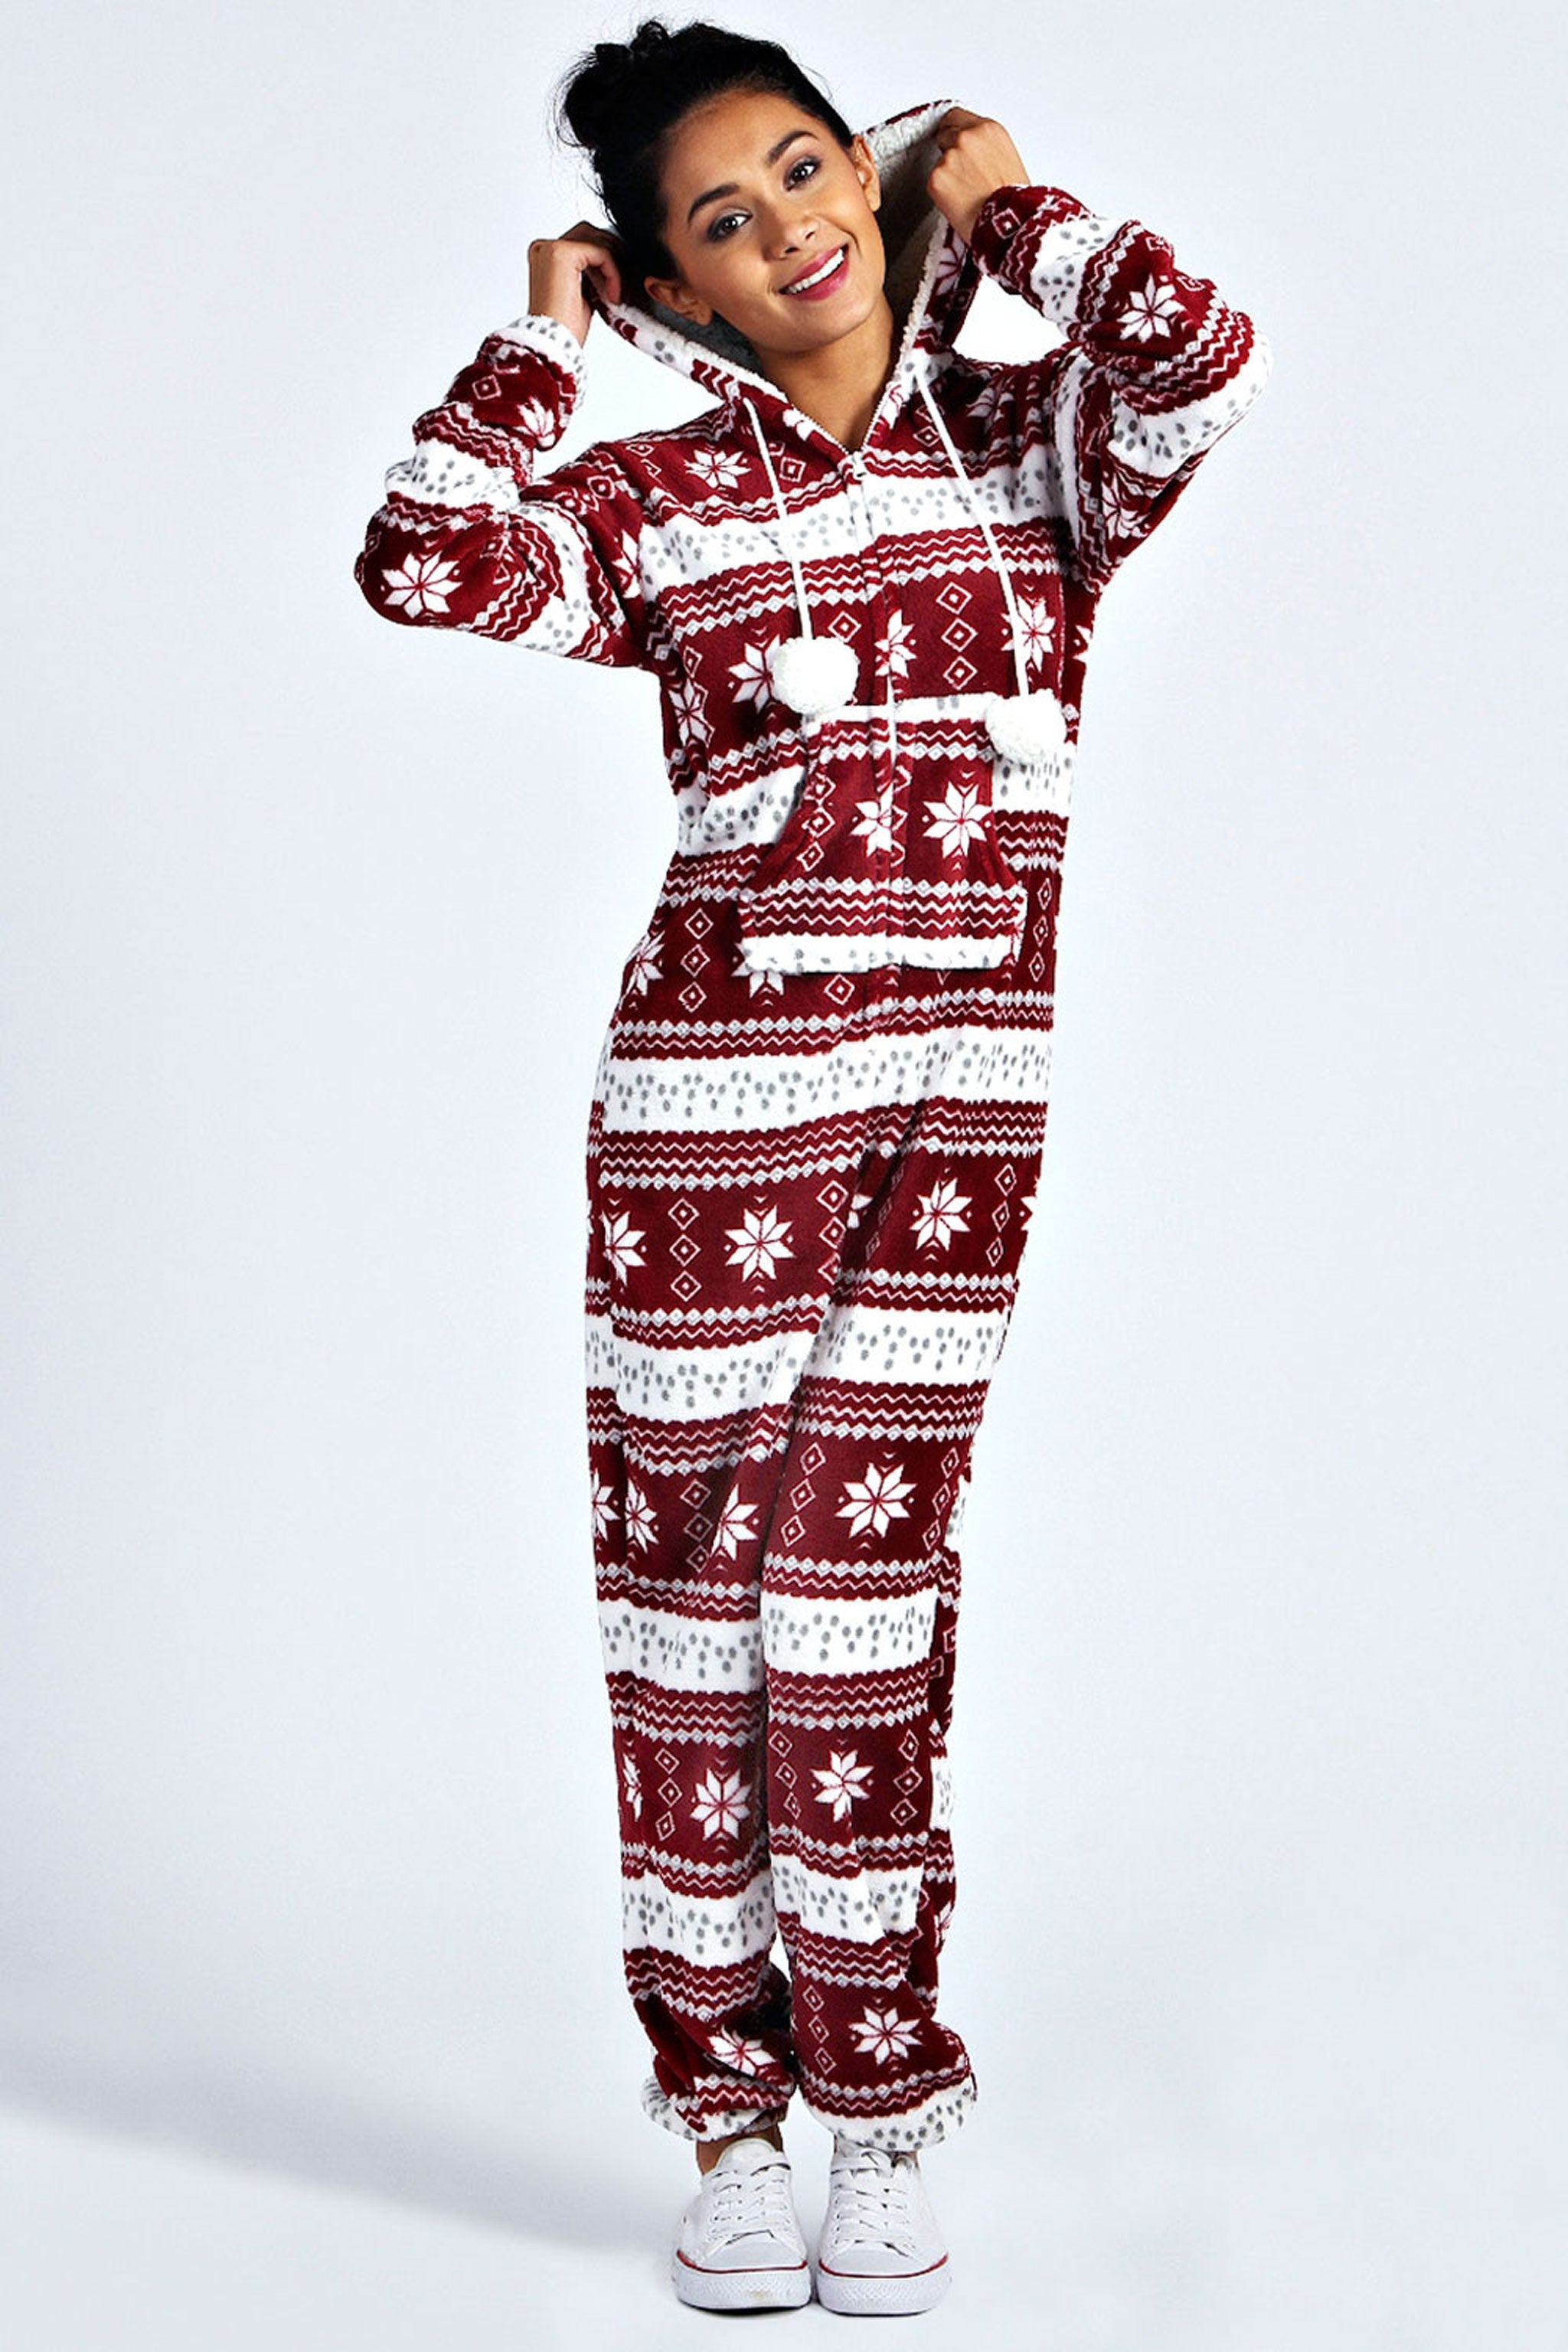 593f25e3e79c And relax... nine best onesies for adults